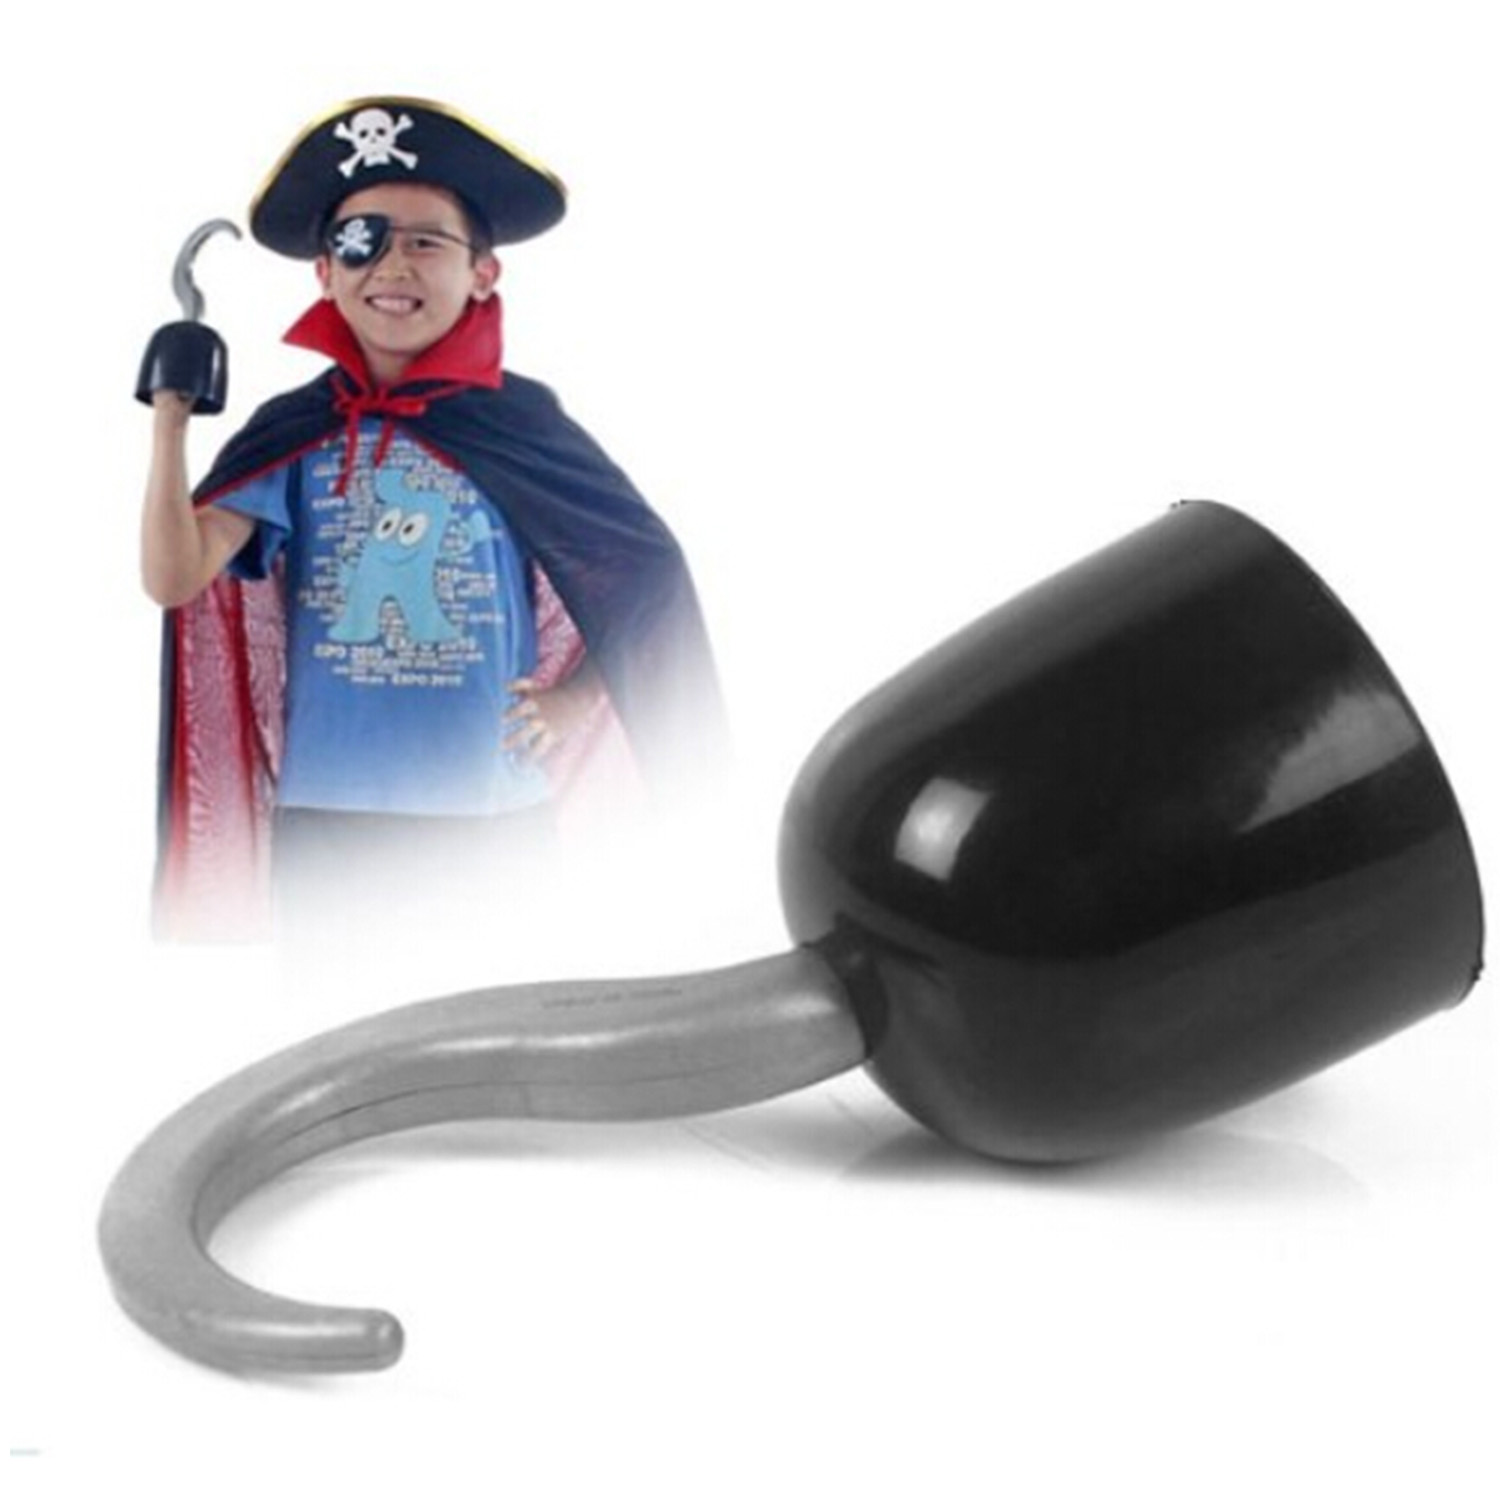 Besegad Kids Plastic Black Weapon Pirate Hook Crochet Toy Ship Captain Party Cos Toy Halloween Cosplay Party Props